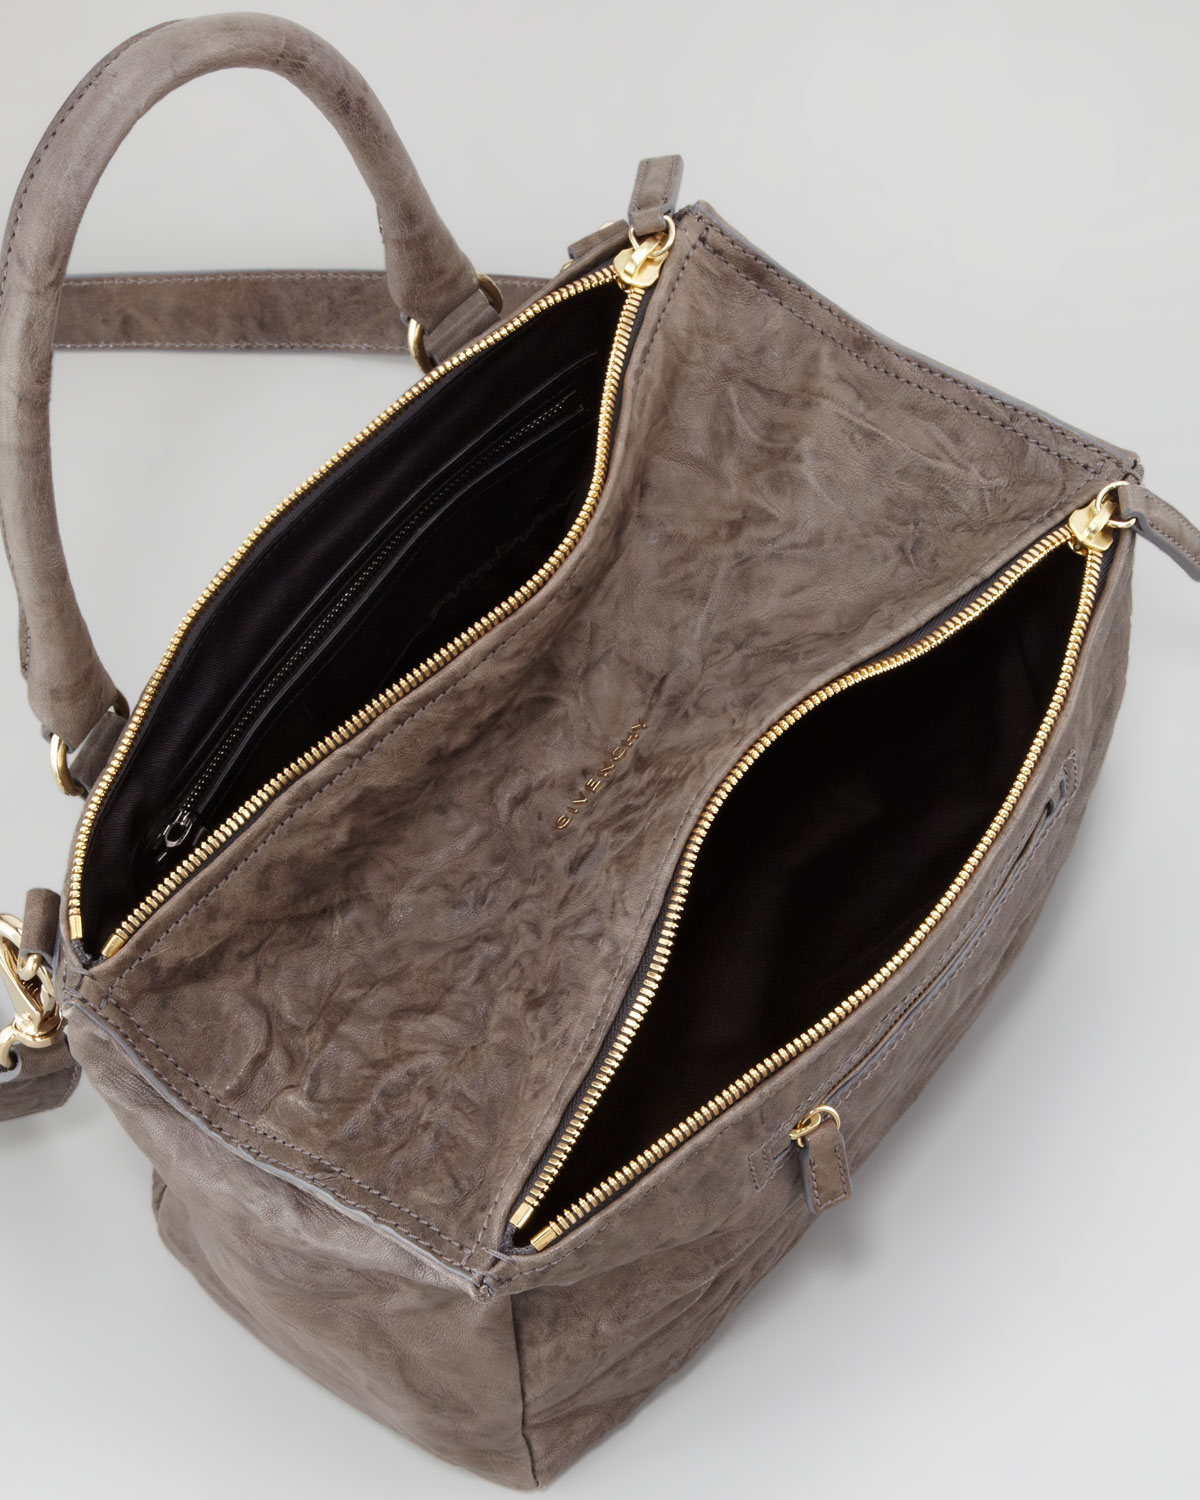 1fa257cbe759 Lyst - Givenchy Pandora Medium Old Pepe Satchel Bag Charcoal in Brown